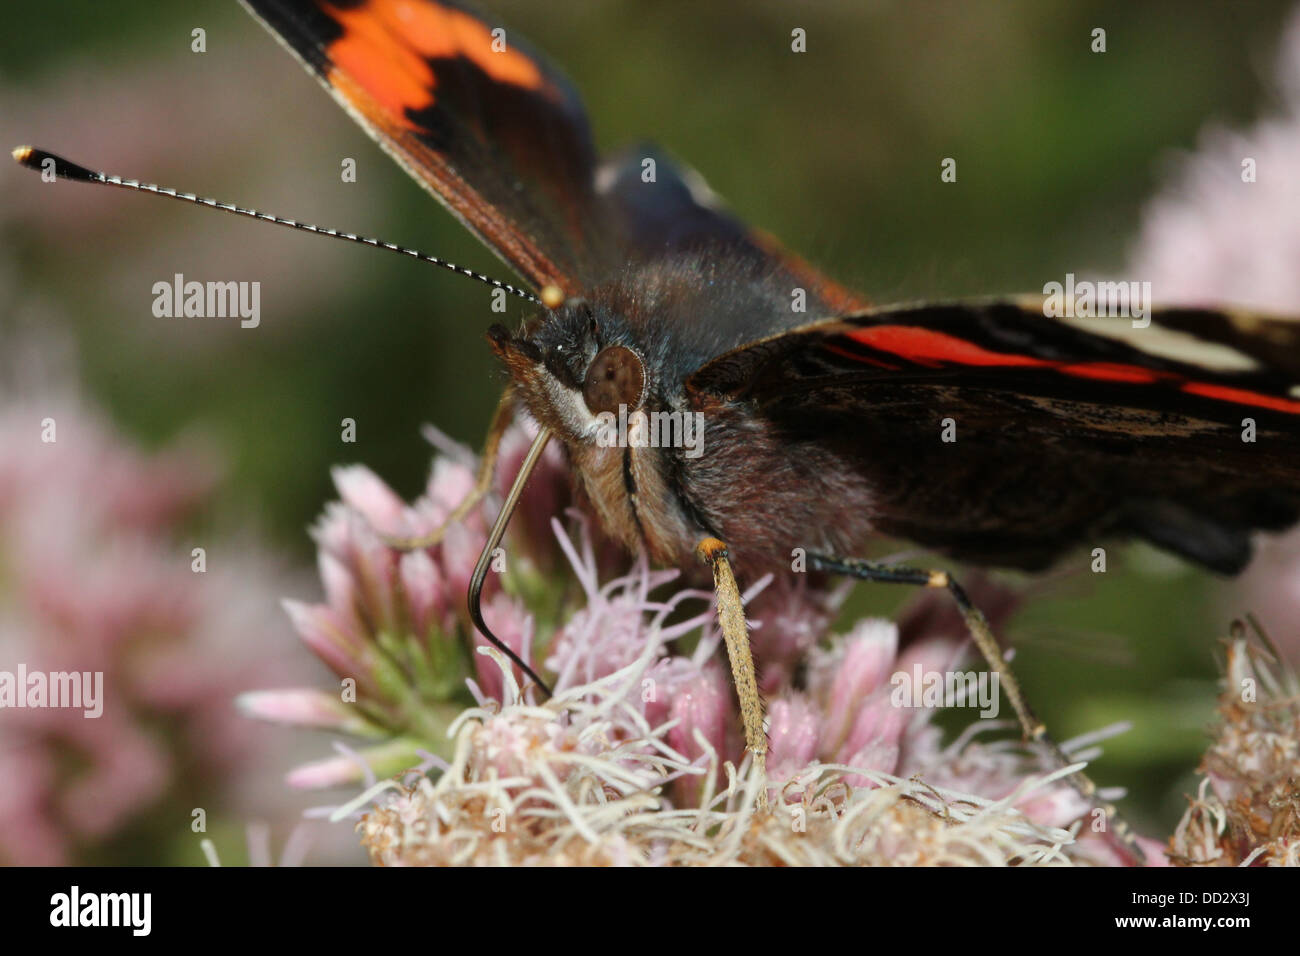 Red admiral butterfly (vanessa atalanta) foraging on a flower - Stock Image